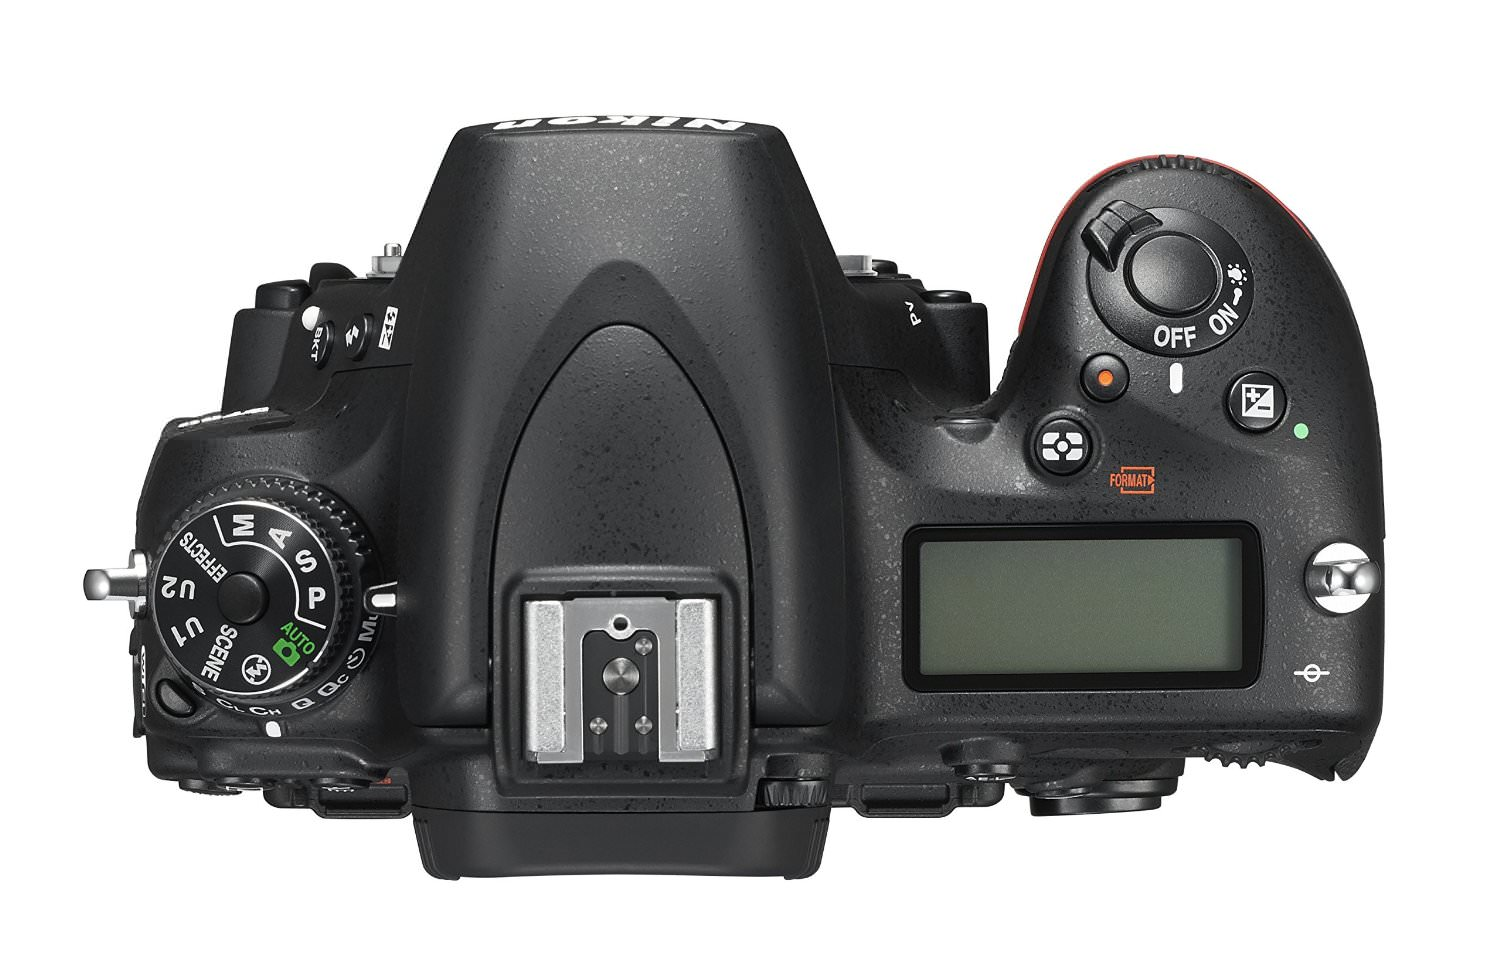 D750 Camera Top View image